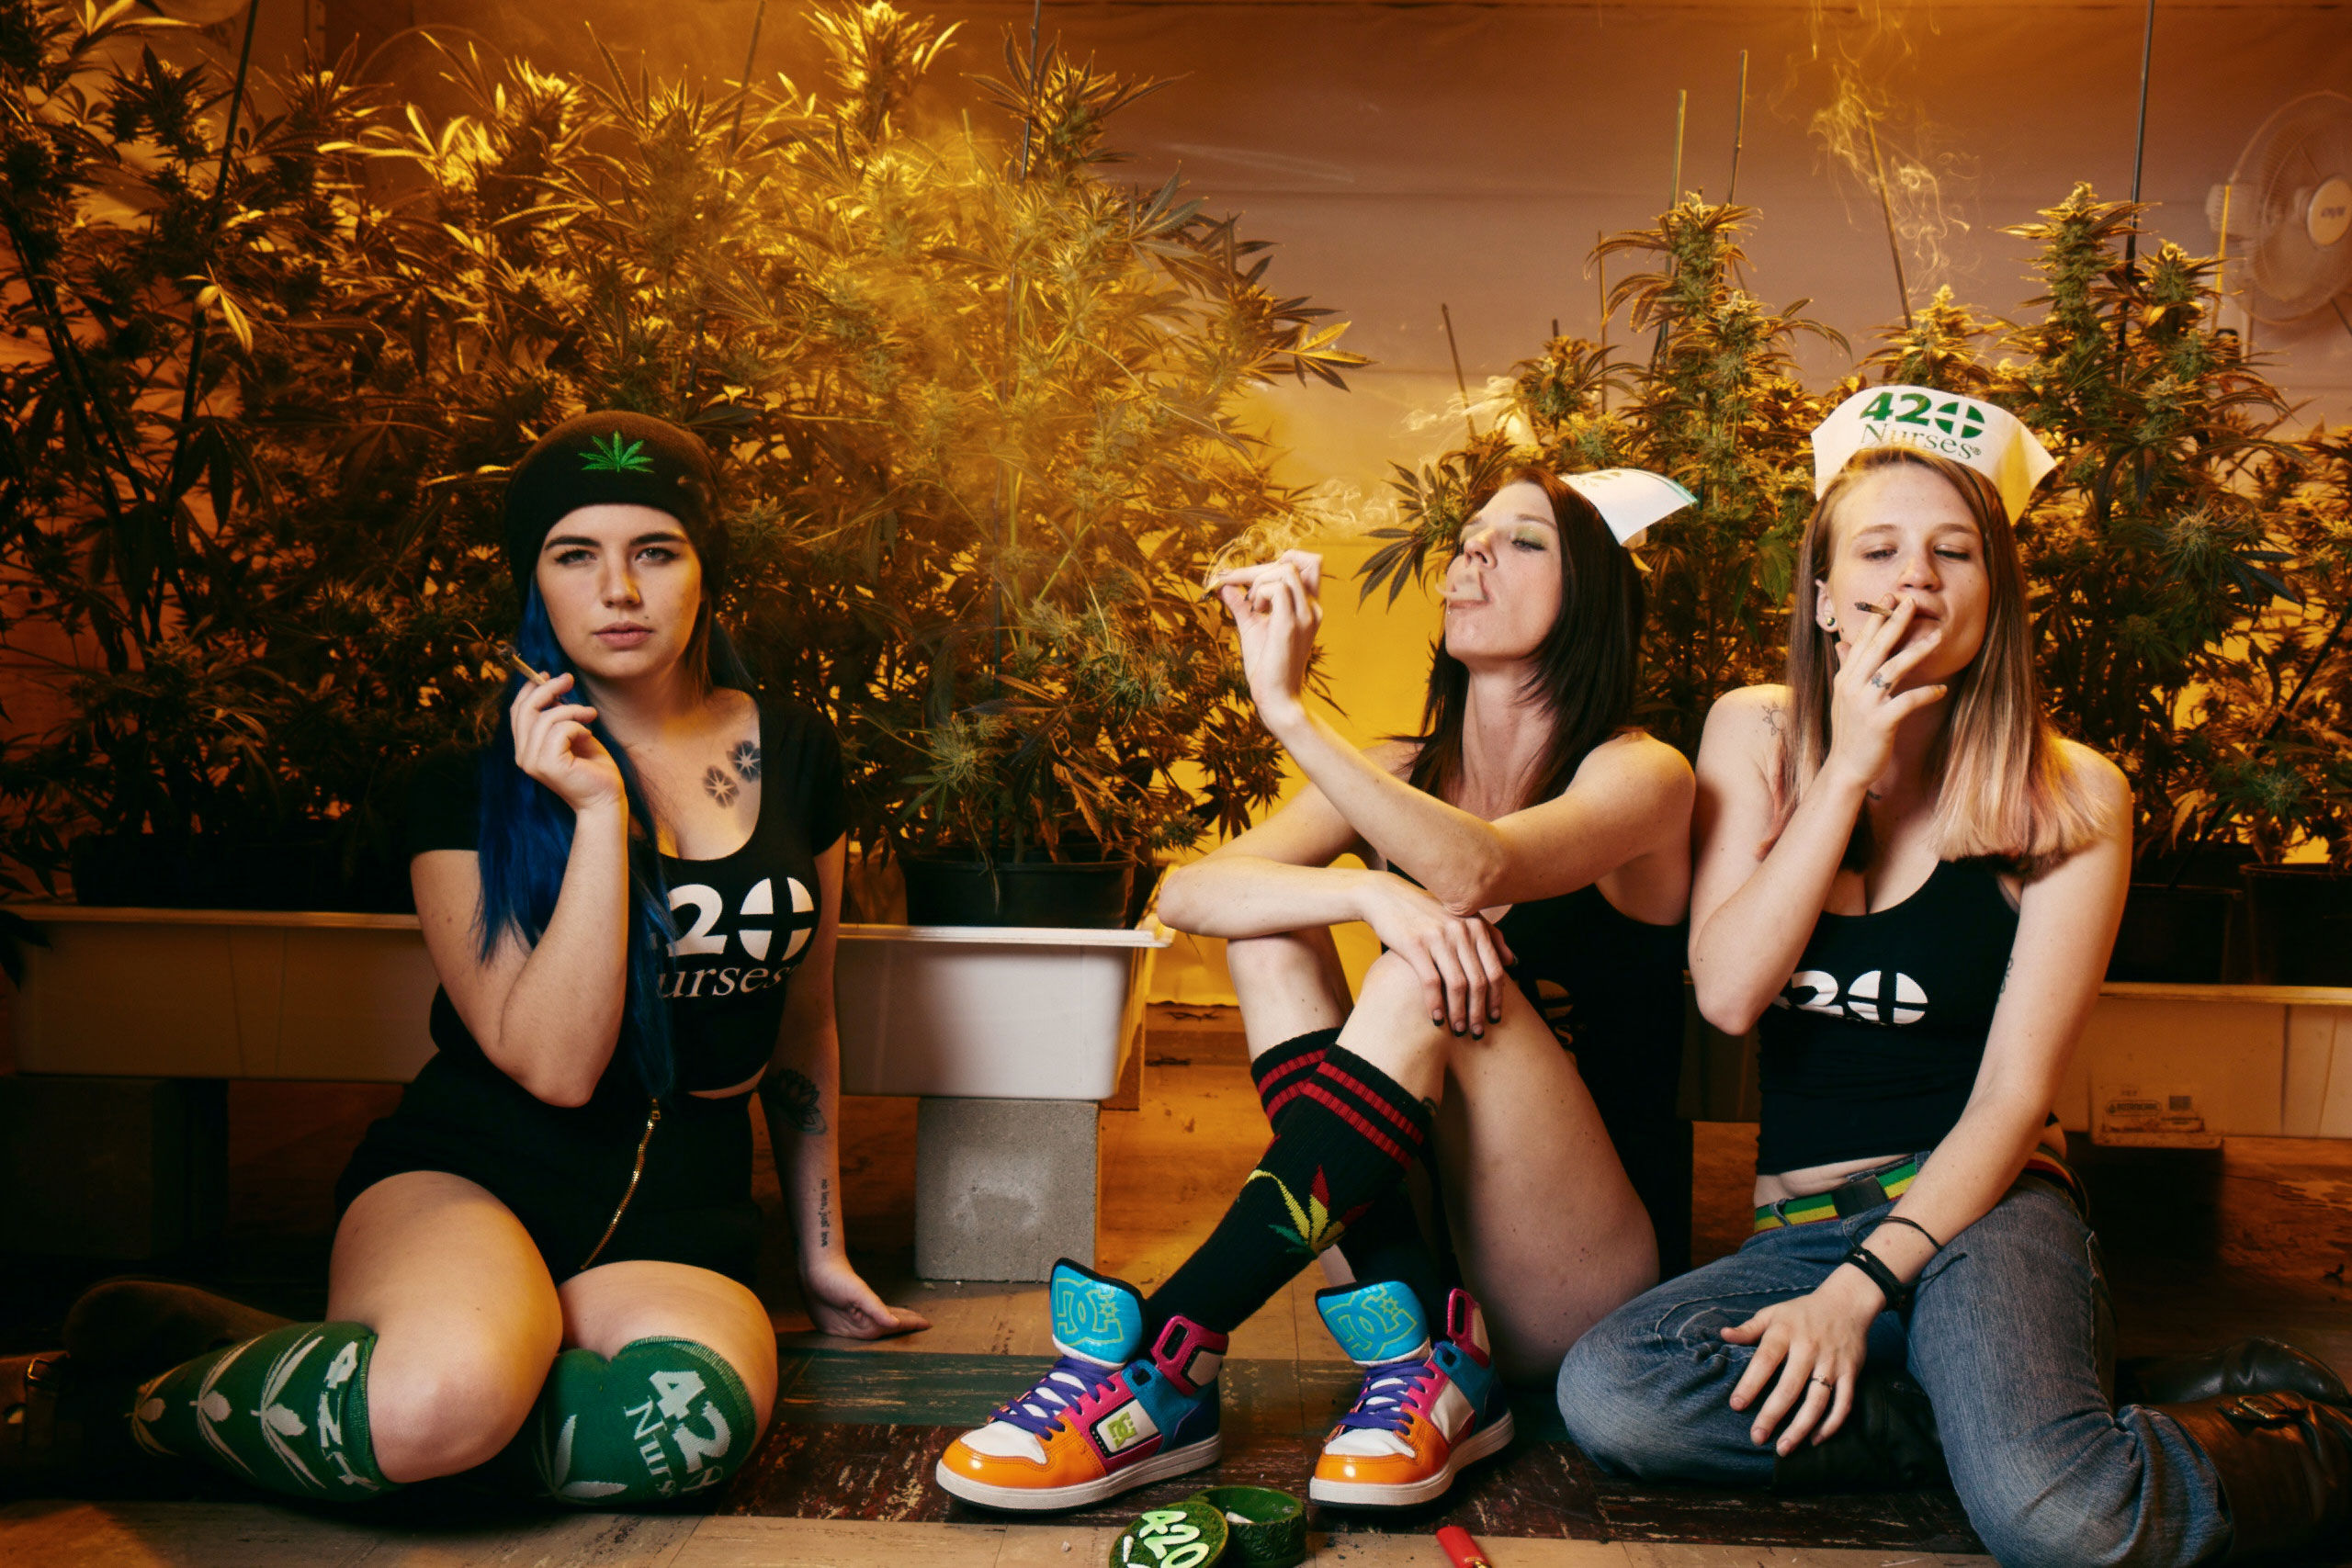 "<b>From left to right, Kathryn Schechter (aka 710 Witch), 21, Alexis Gavin (aka Lexileggo), 23, Katelyn Chapman (aka Katie Kush), 23. </b>                                    Chapman: ""If I could dispel one myth about cannabis, it would probably have to be that the use leads to addiction and dependence."""